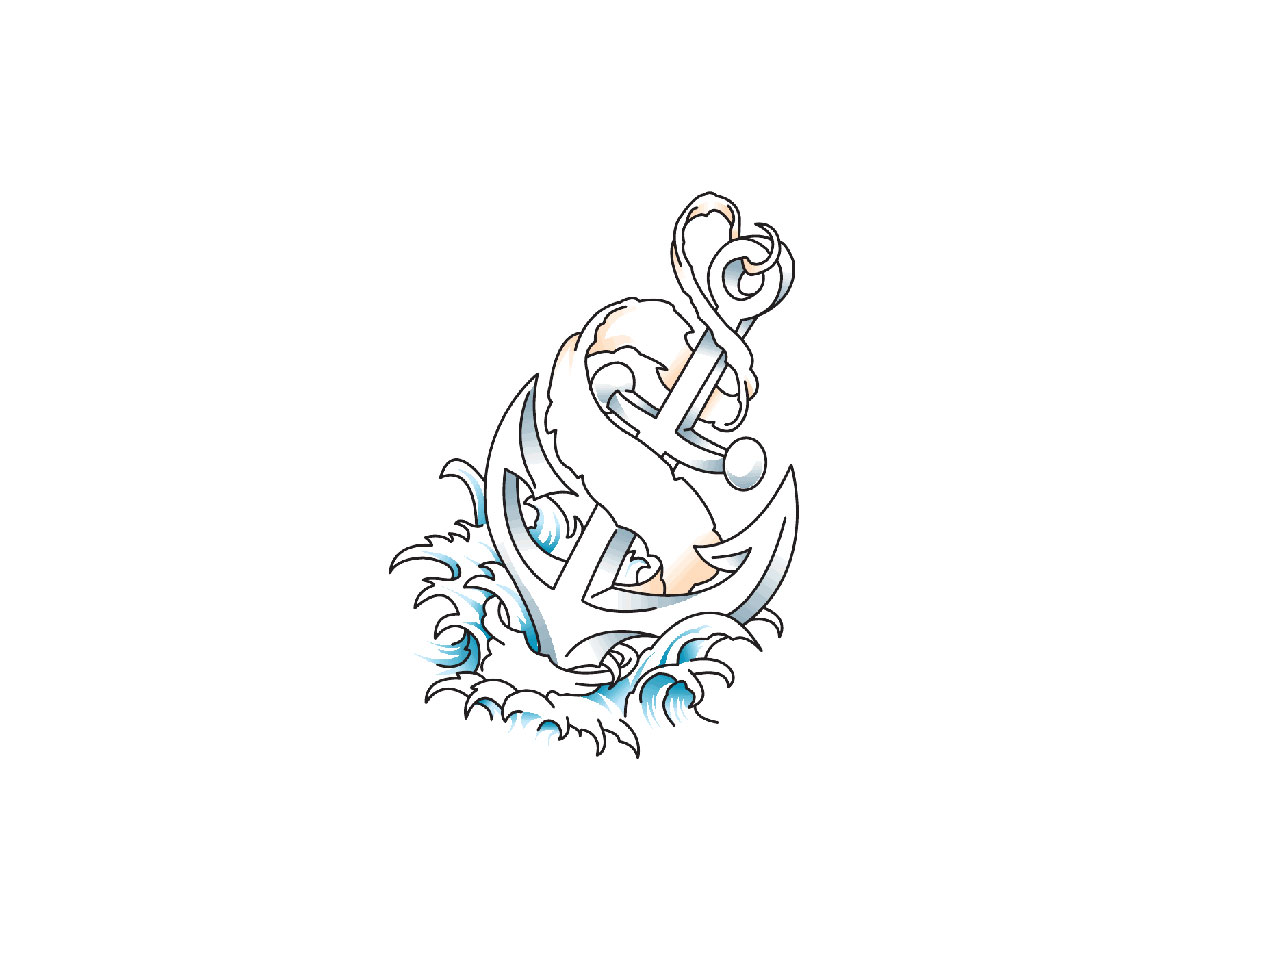 Anchor In The Waves Tattoo Idea